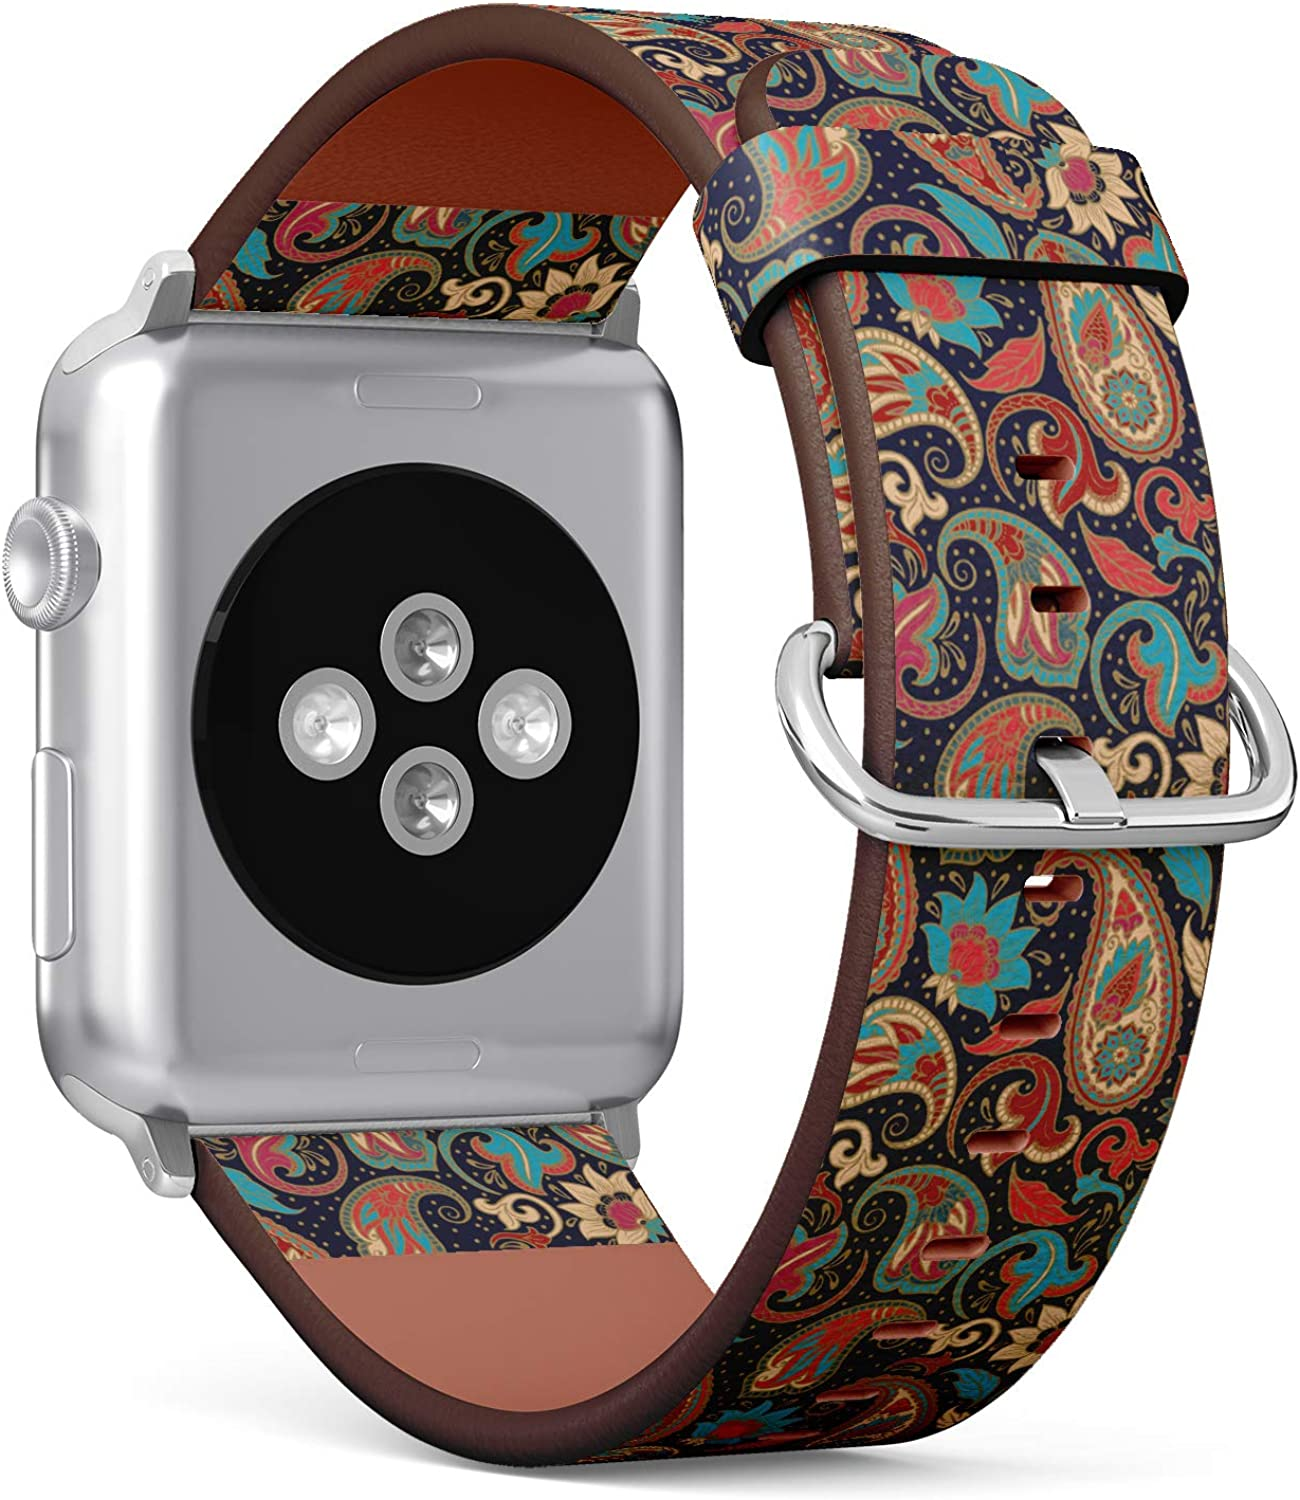 (Decorative Pattern of Ethnic Paisley) Patterned Leather Wristband Strap for Apple Watch Series 4/3/2/1 gen,Replacement for iWatch 42mm / 44mm Bands